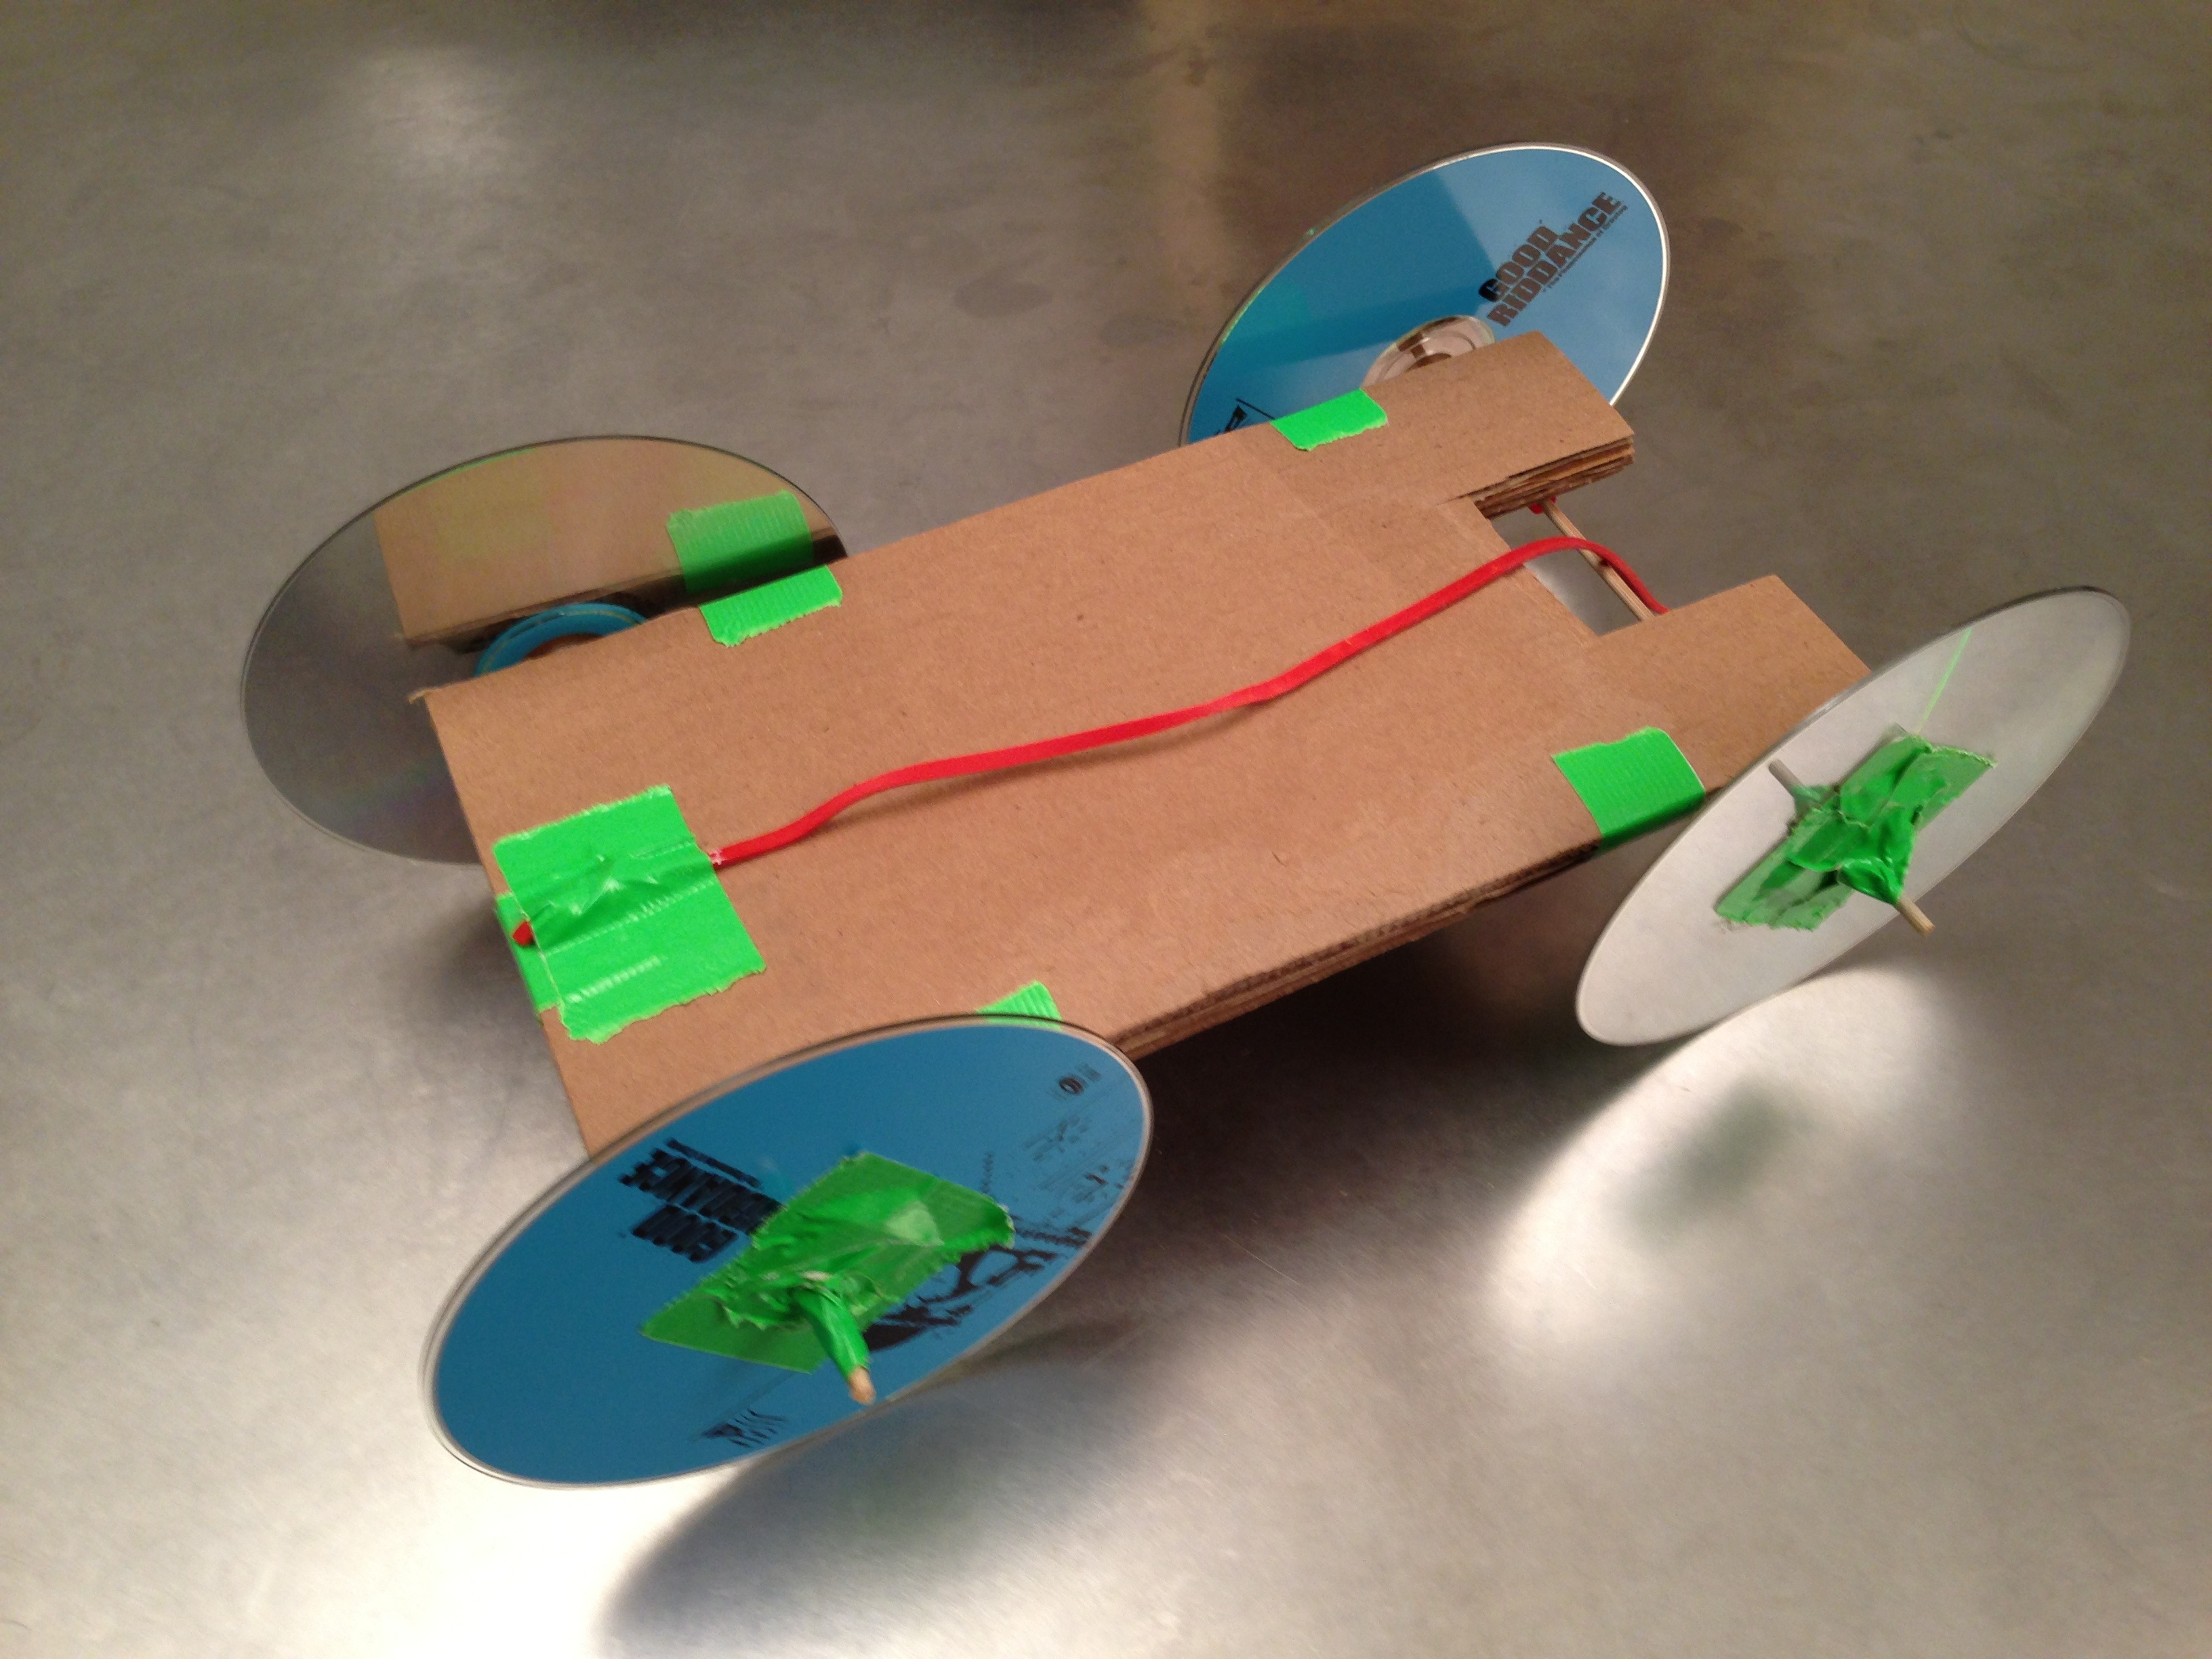 Rubber band powered car diy malvernweather Image collections